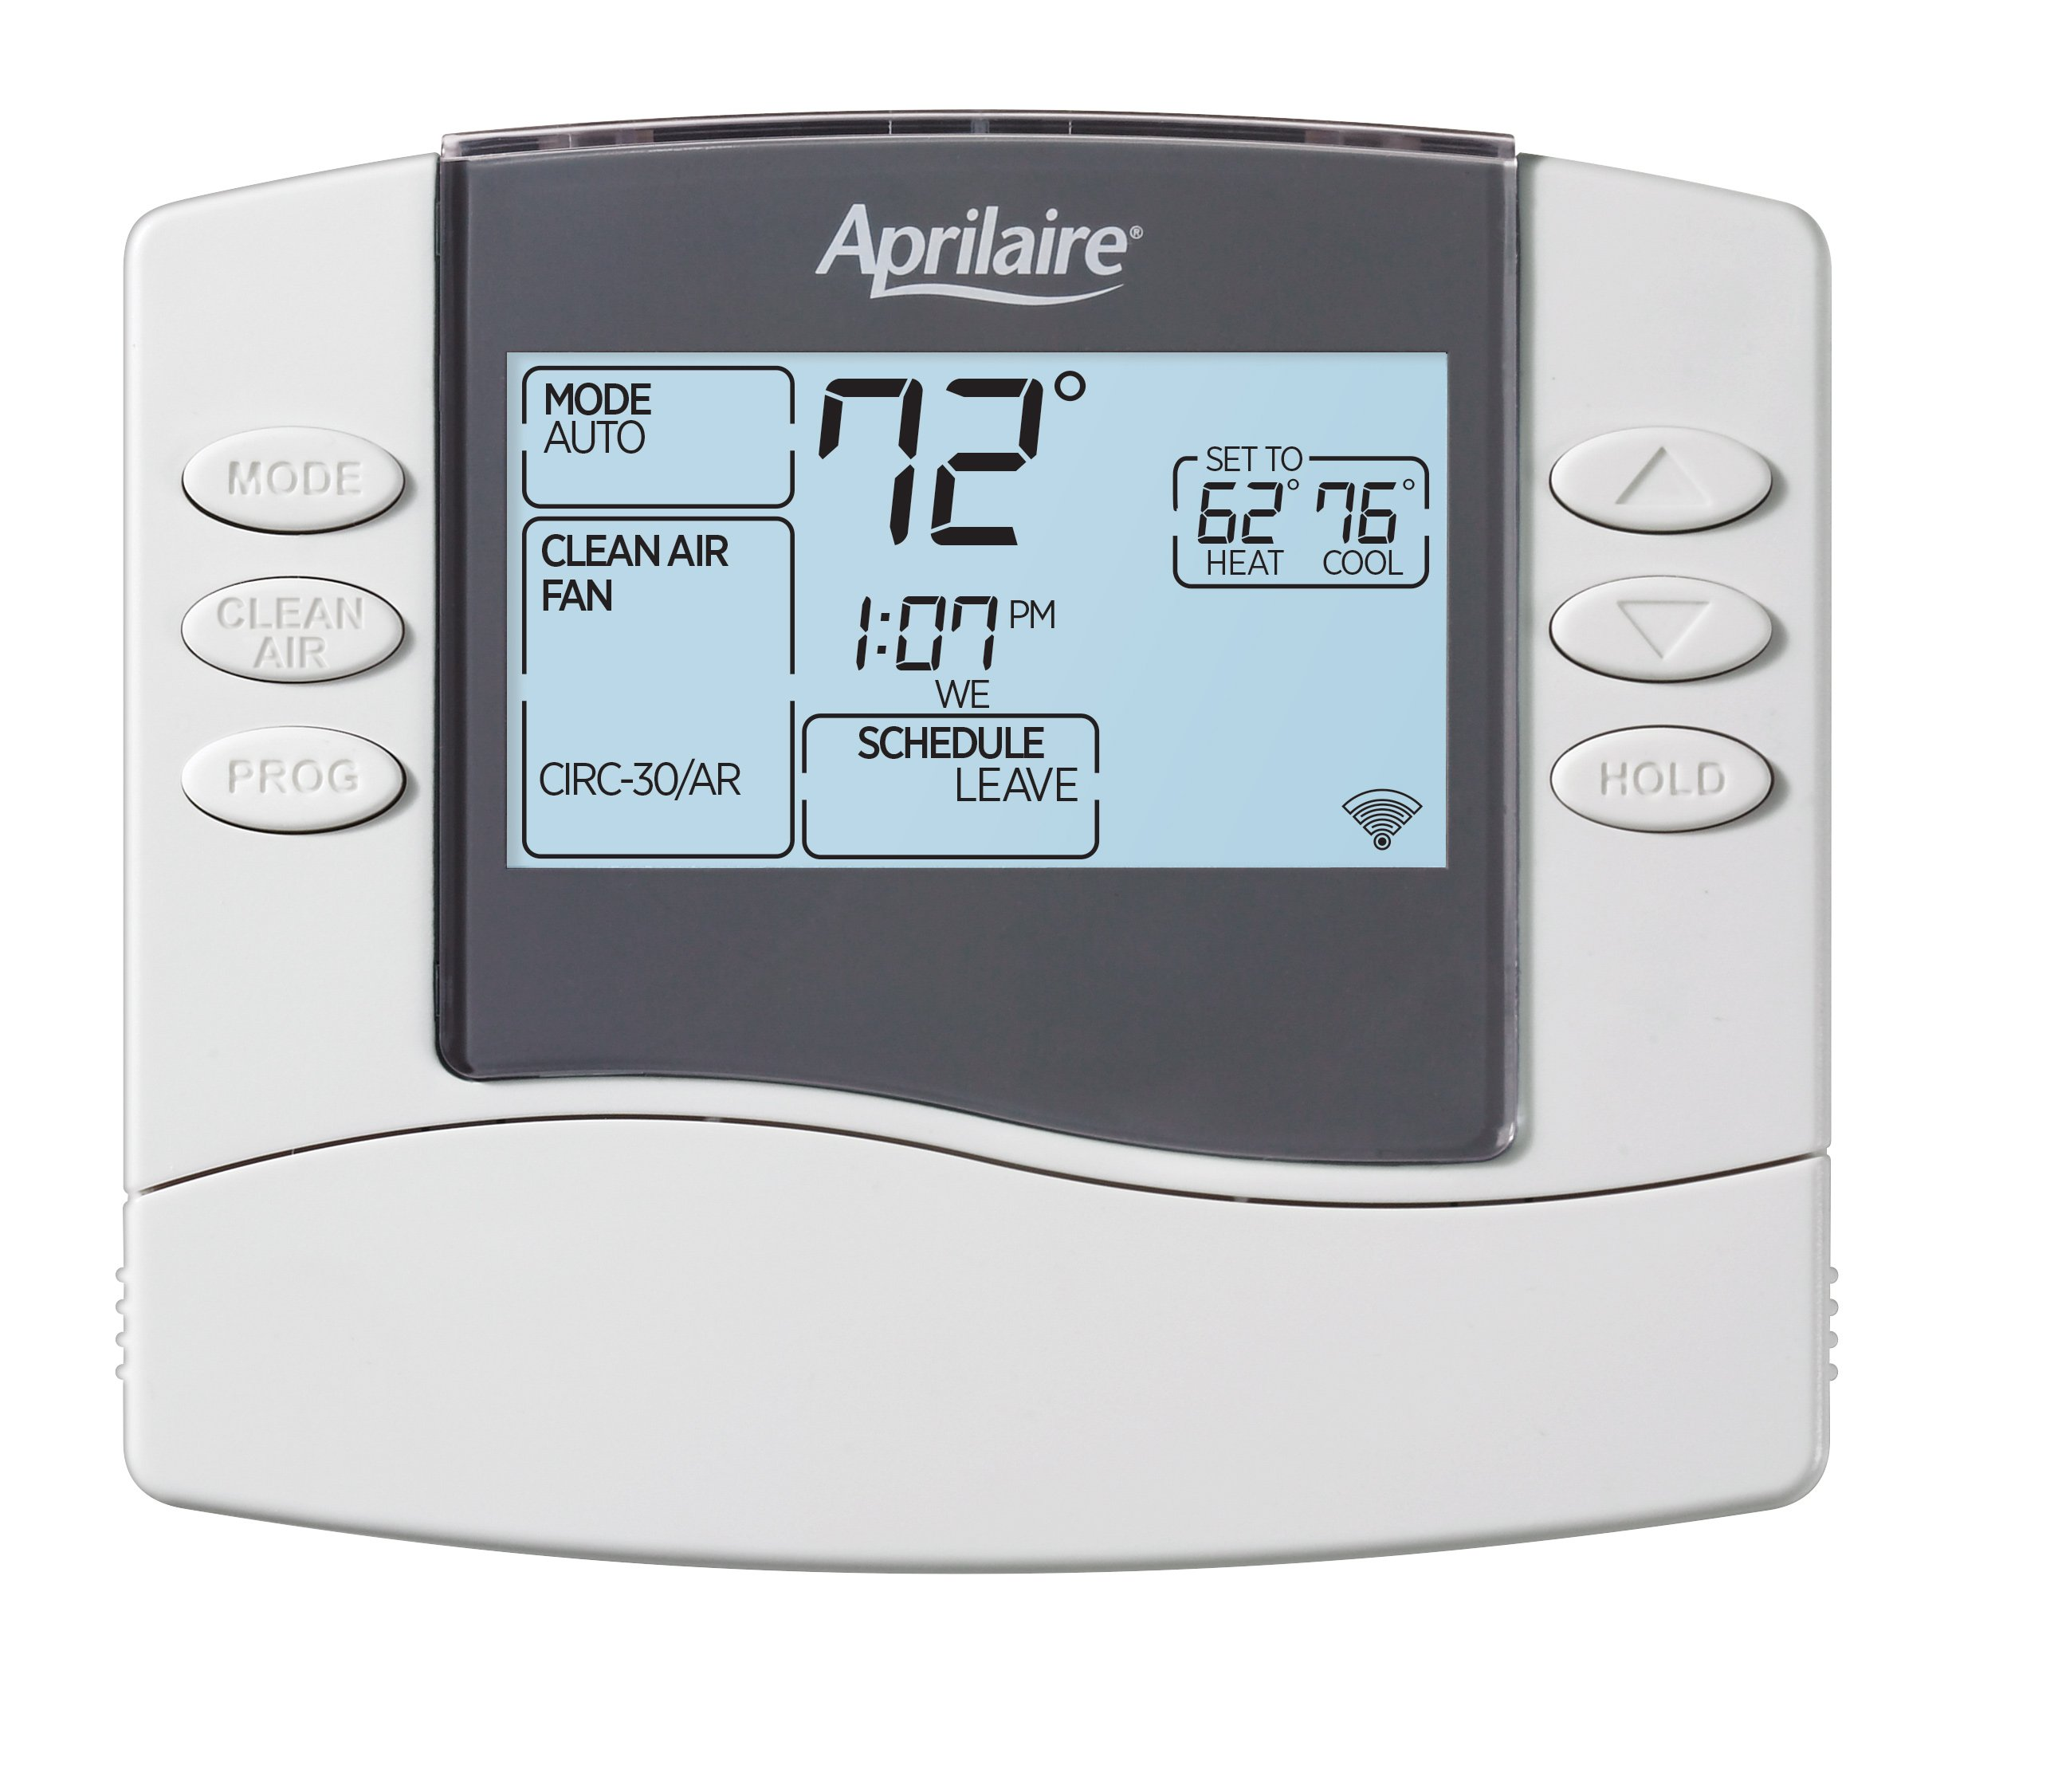 Aprilaire Model 8810 Thermostat